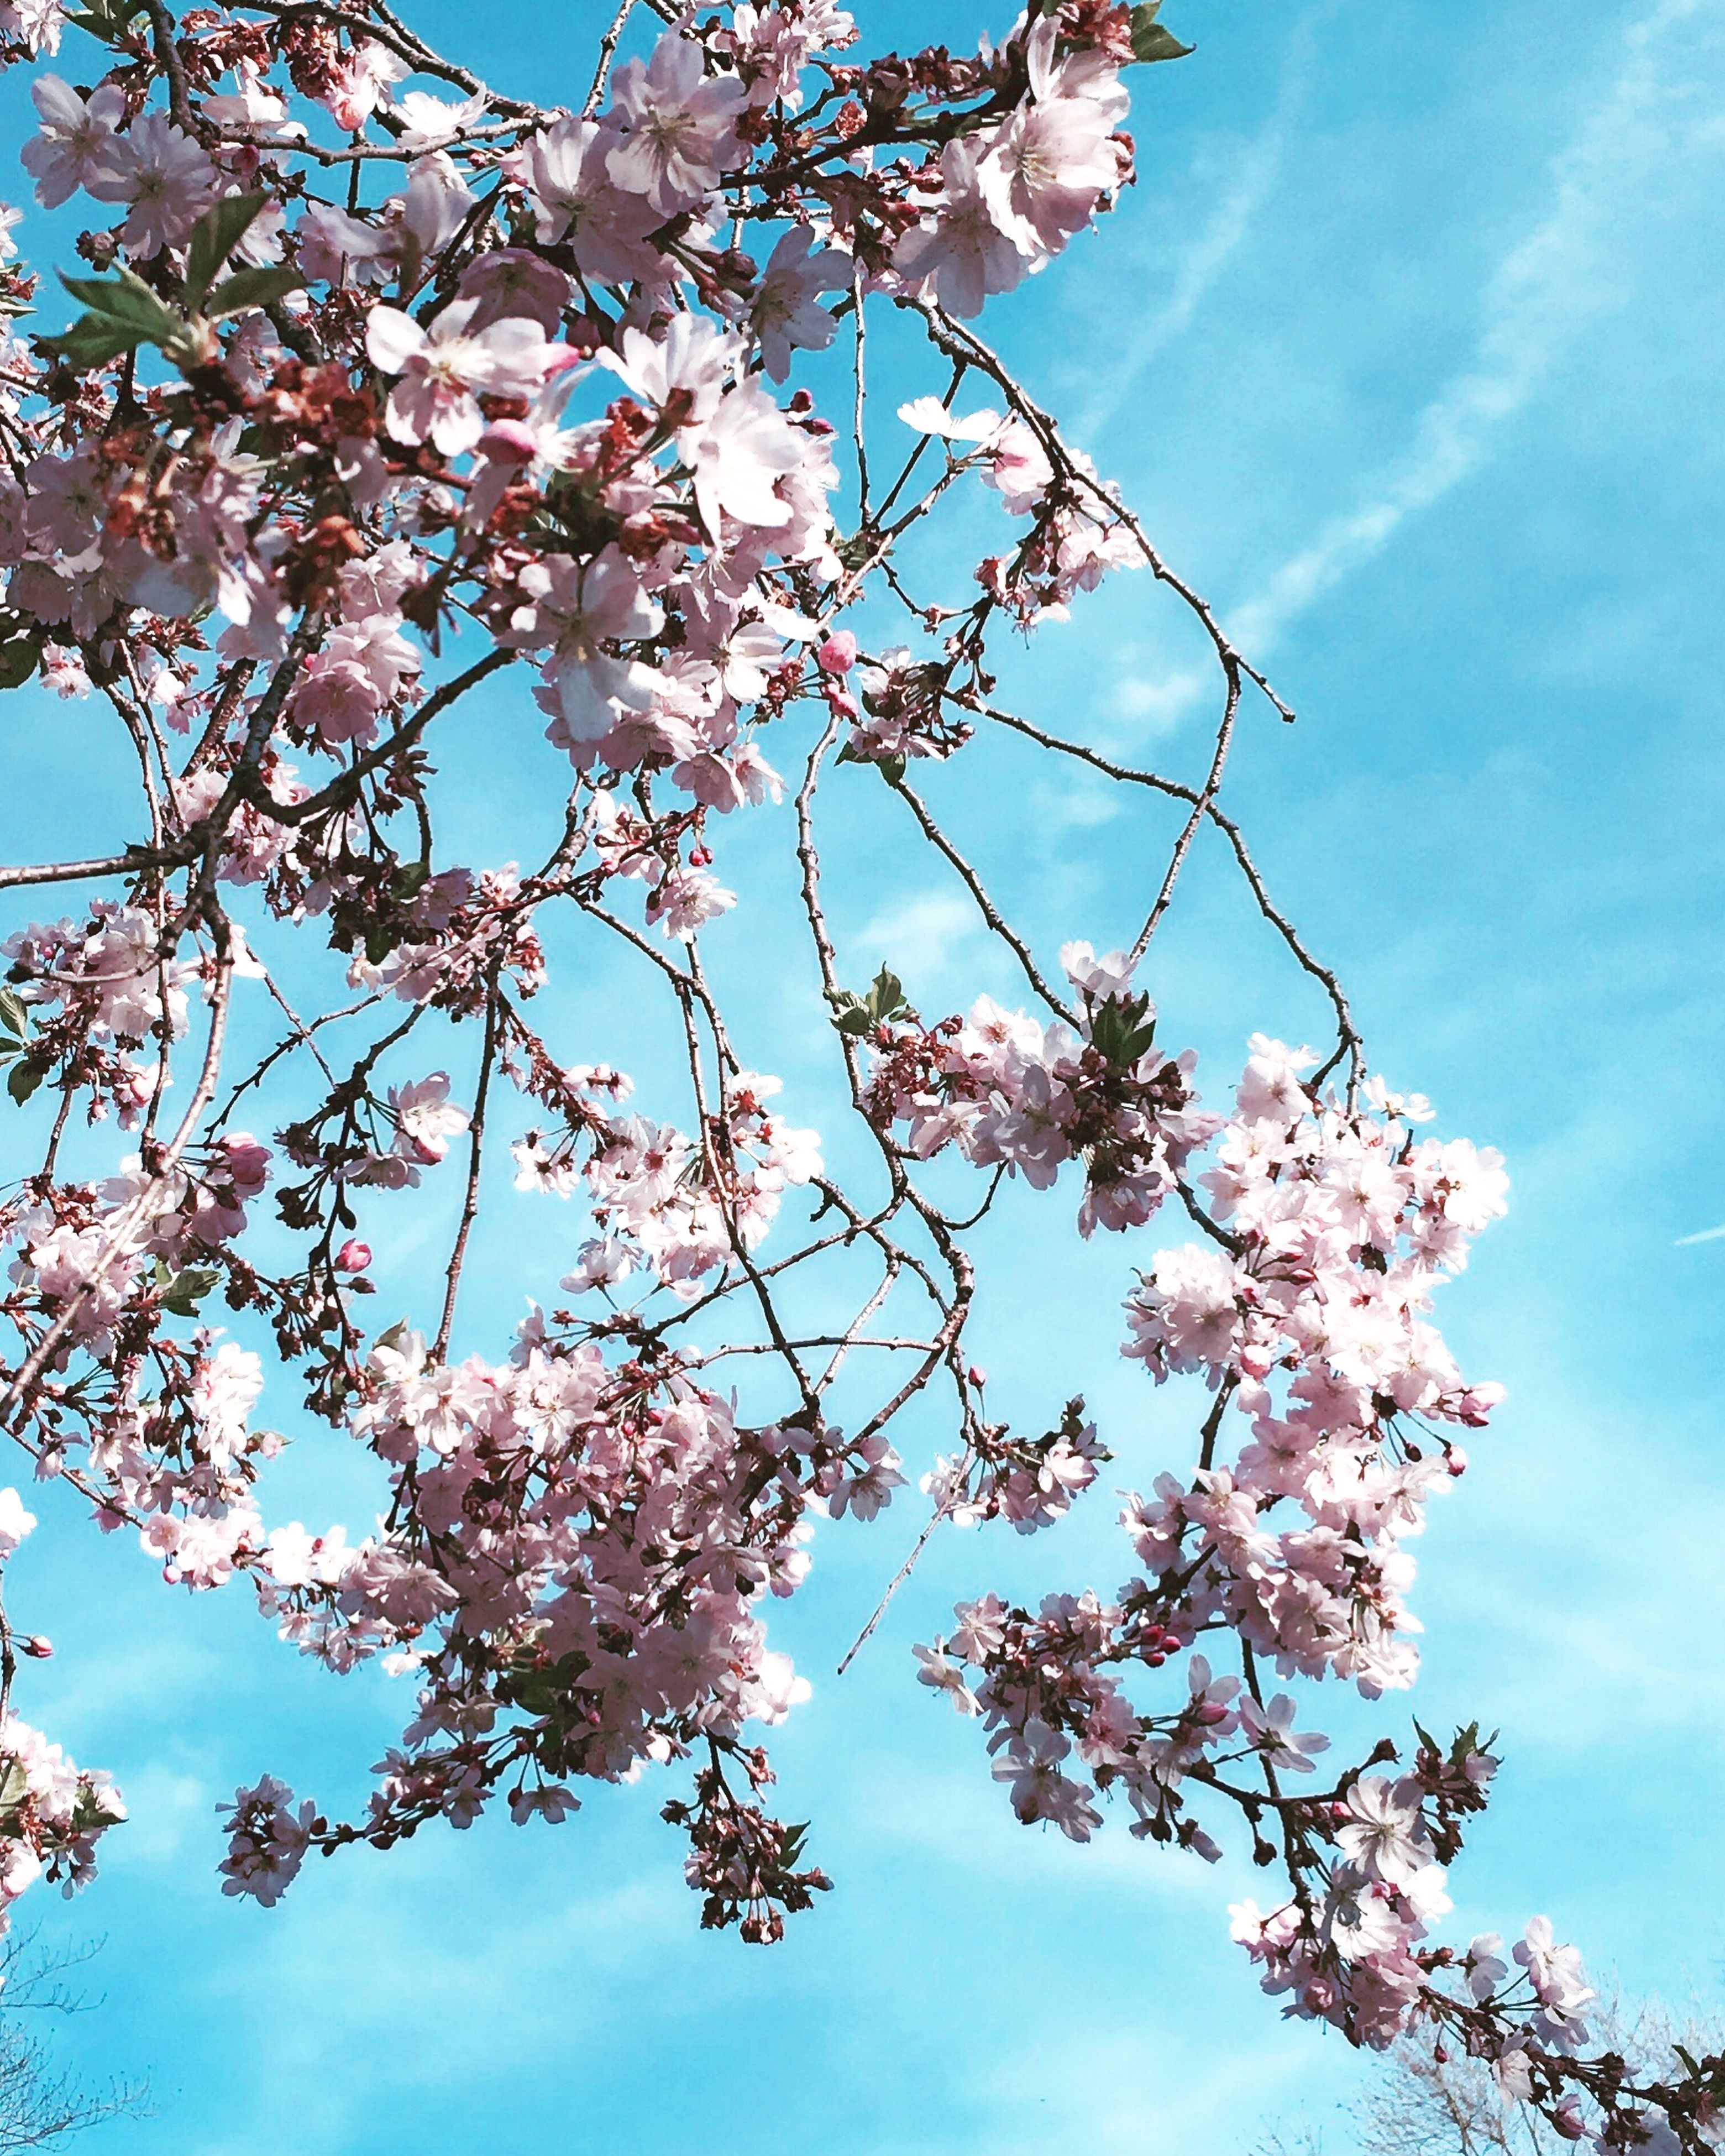 low angle view, flower, branch, tree, freshness, growth, beauty in nature, sky, cherry blossom, blossom, nature, blue, fragility, cherry tree, in bloom, fruit tree, springtime, blooming, day, twig